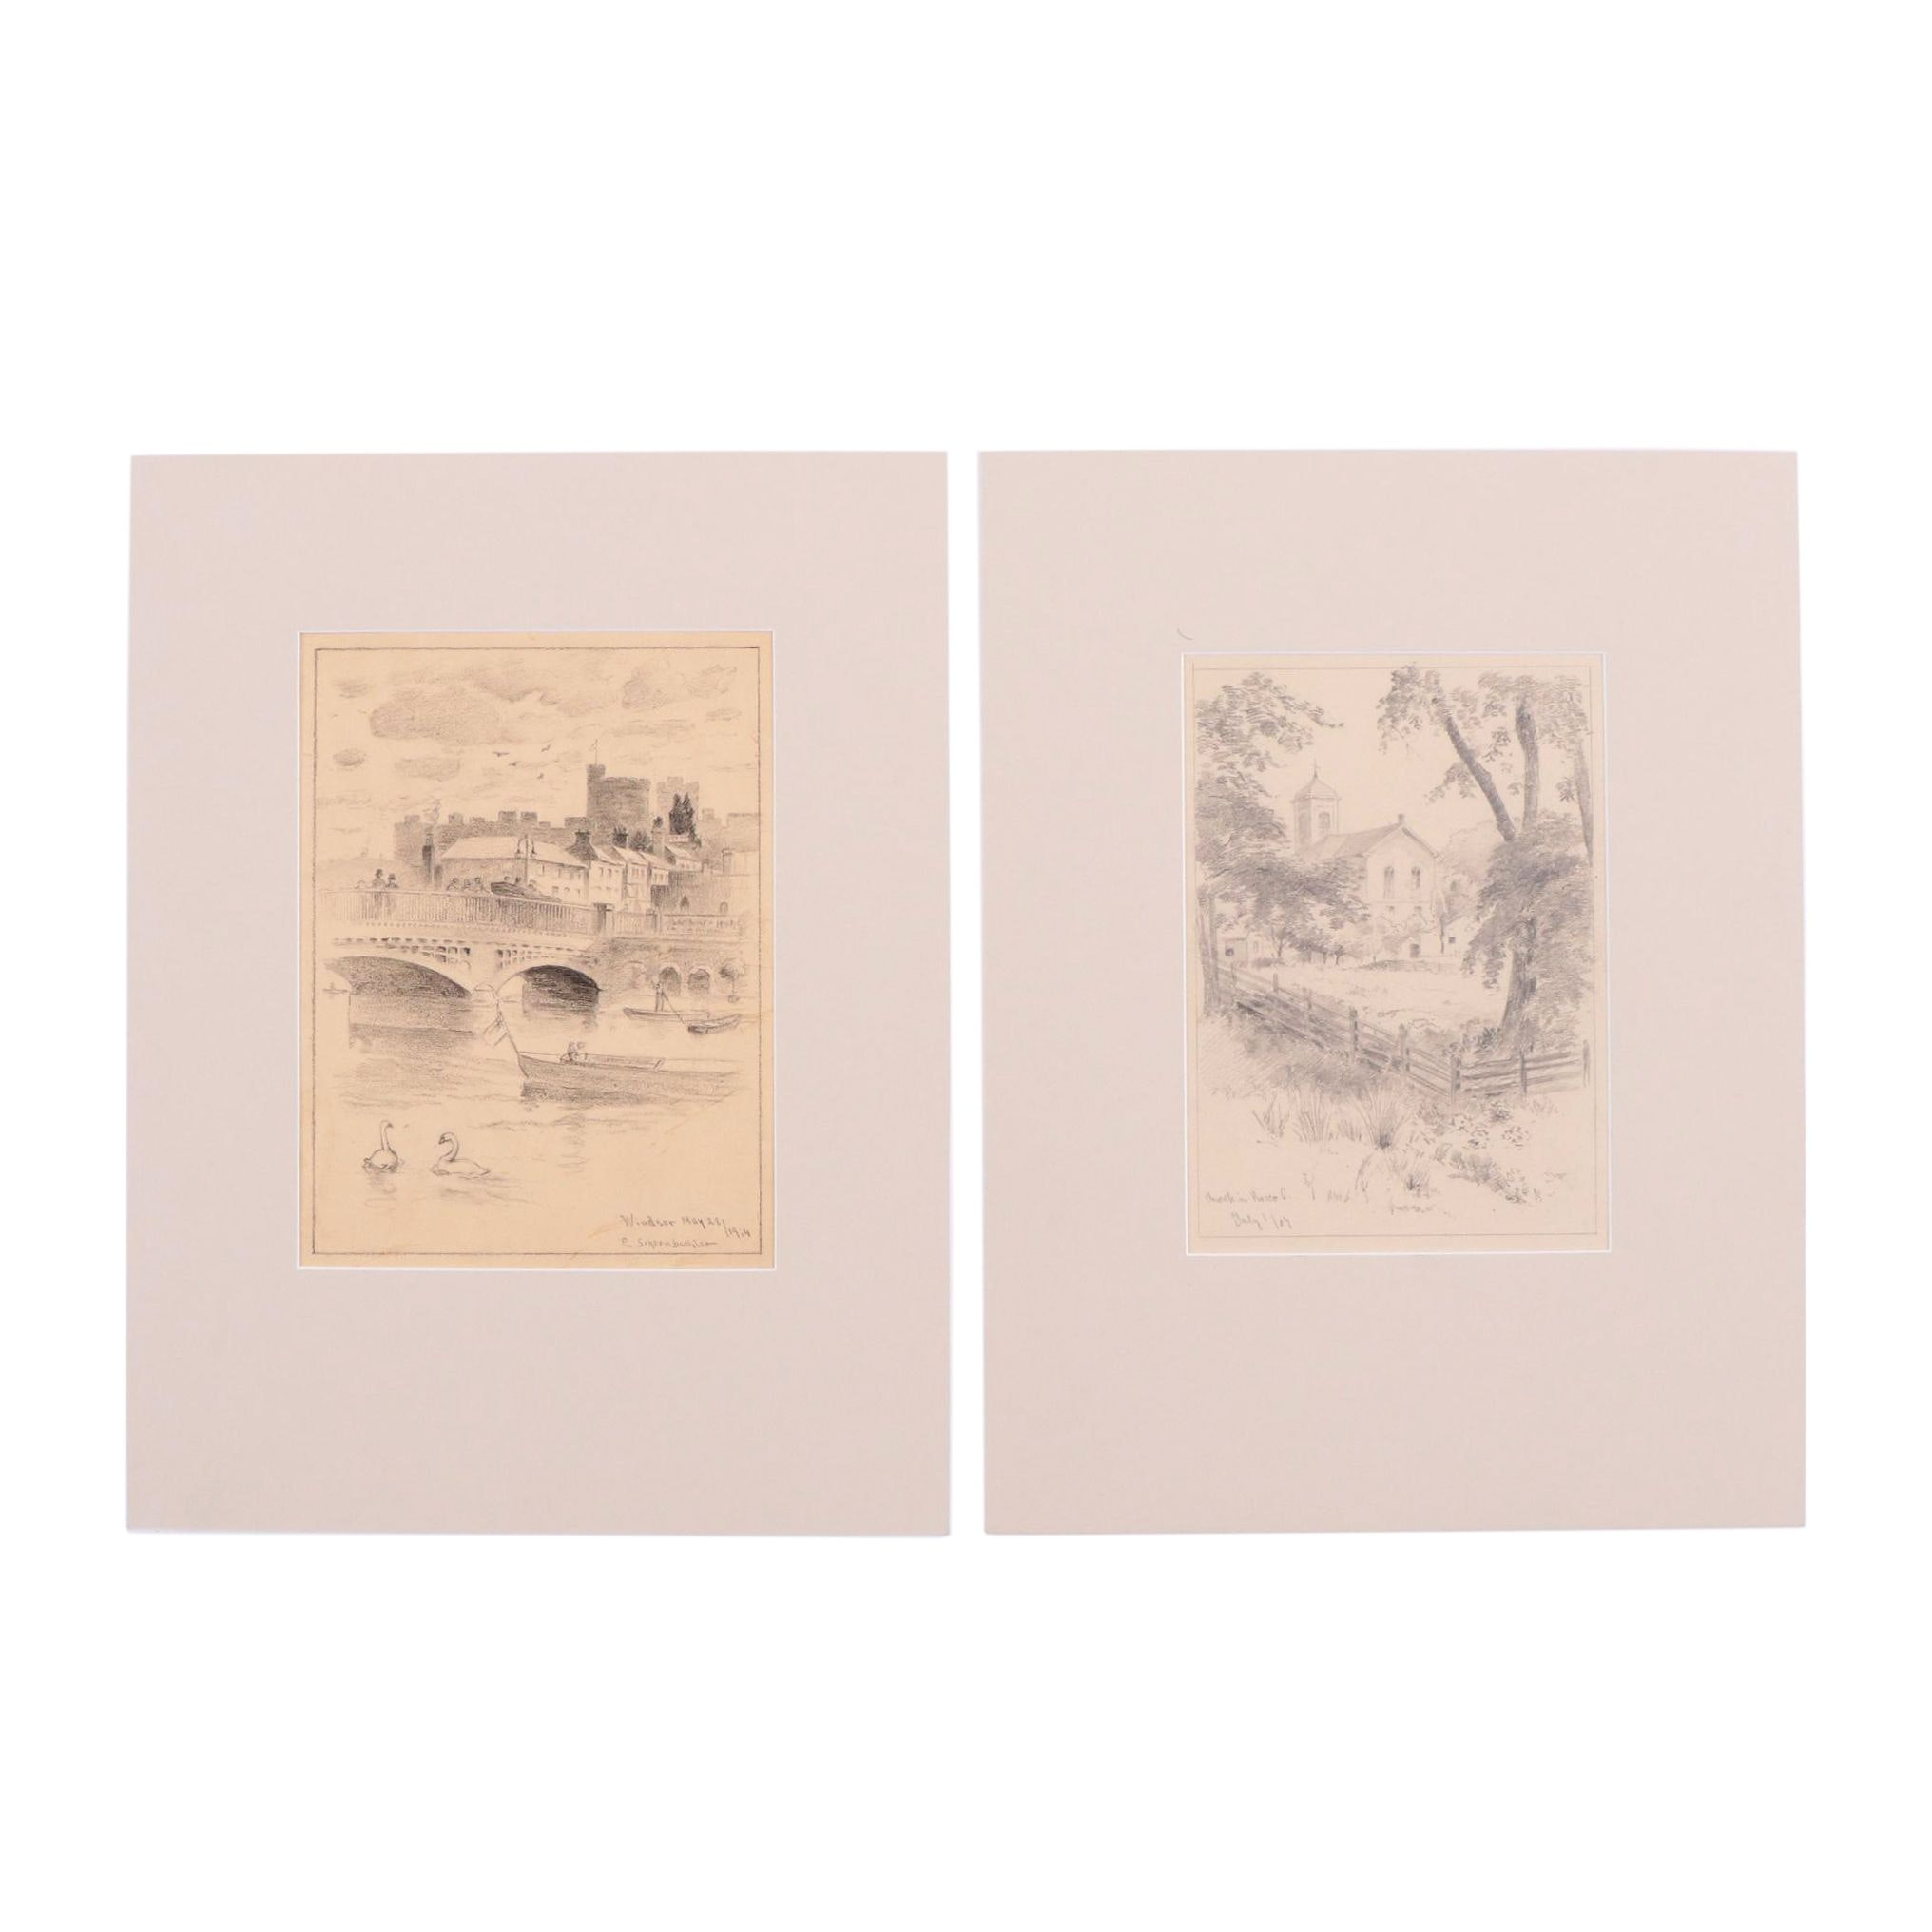 E. Schoenbachler Early 20th-Century Graphite Drawings